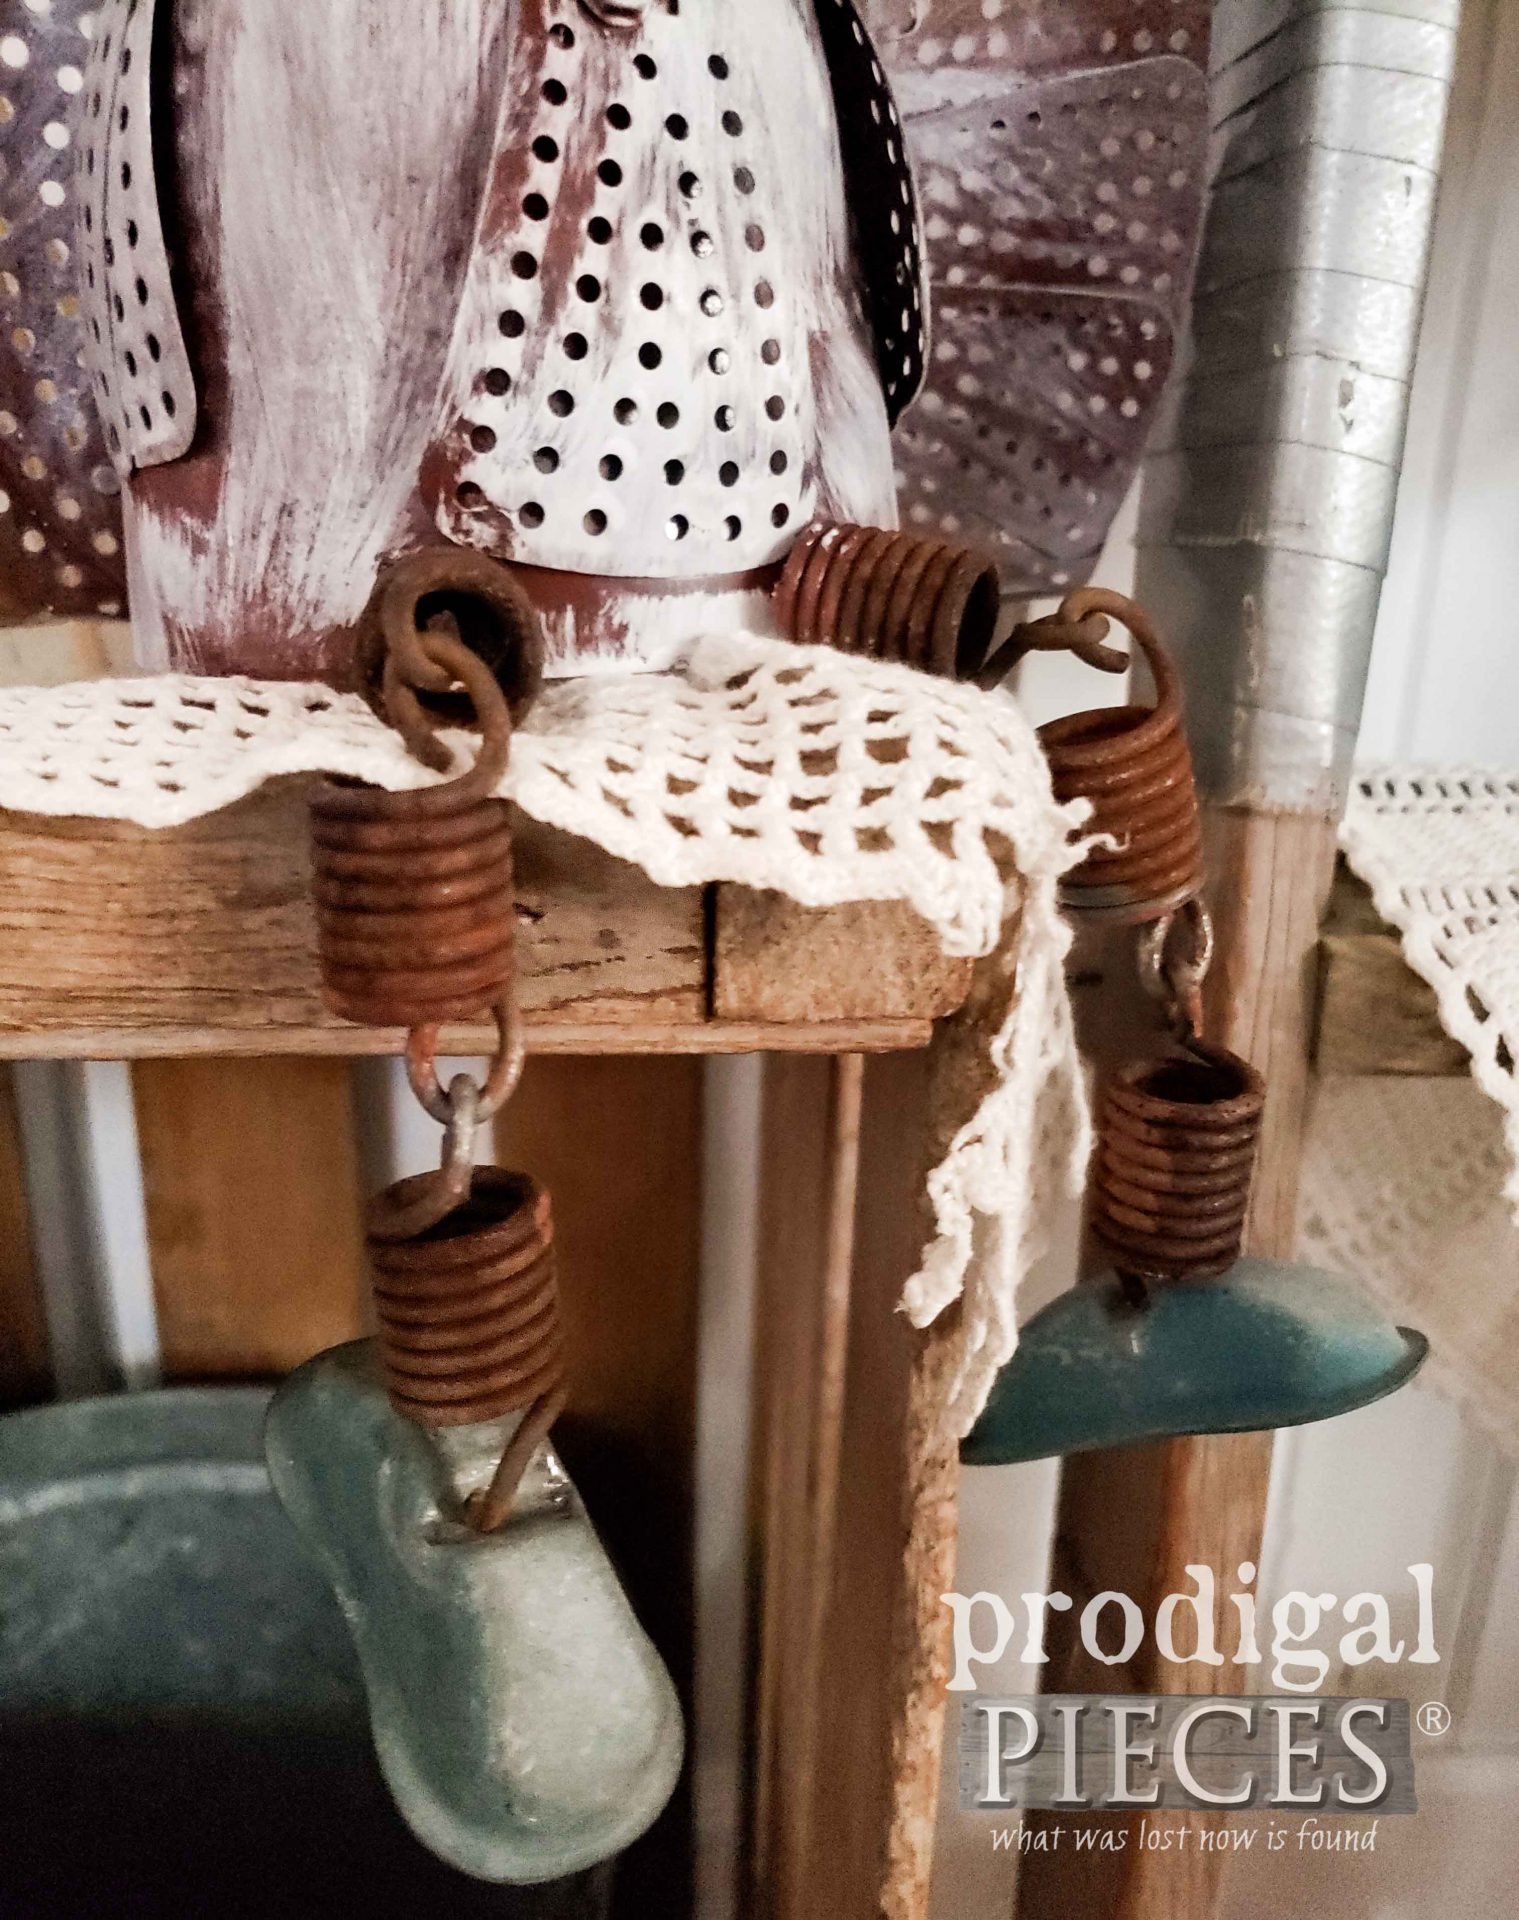 Knobby Knees on Salvaged Junk Turkey Art created by Larissa of Prodigal Pieces | prodigalpieces.com #prodigalpieces #art #handmade #farmhouse #diy #home #homedecor